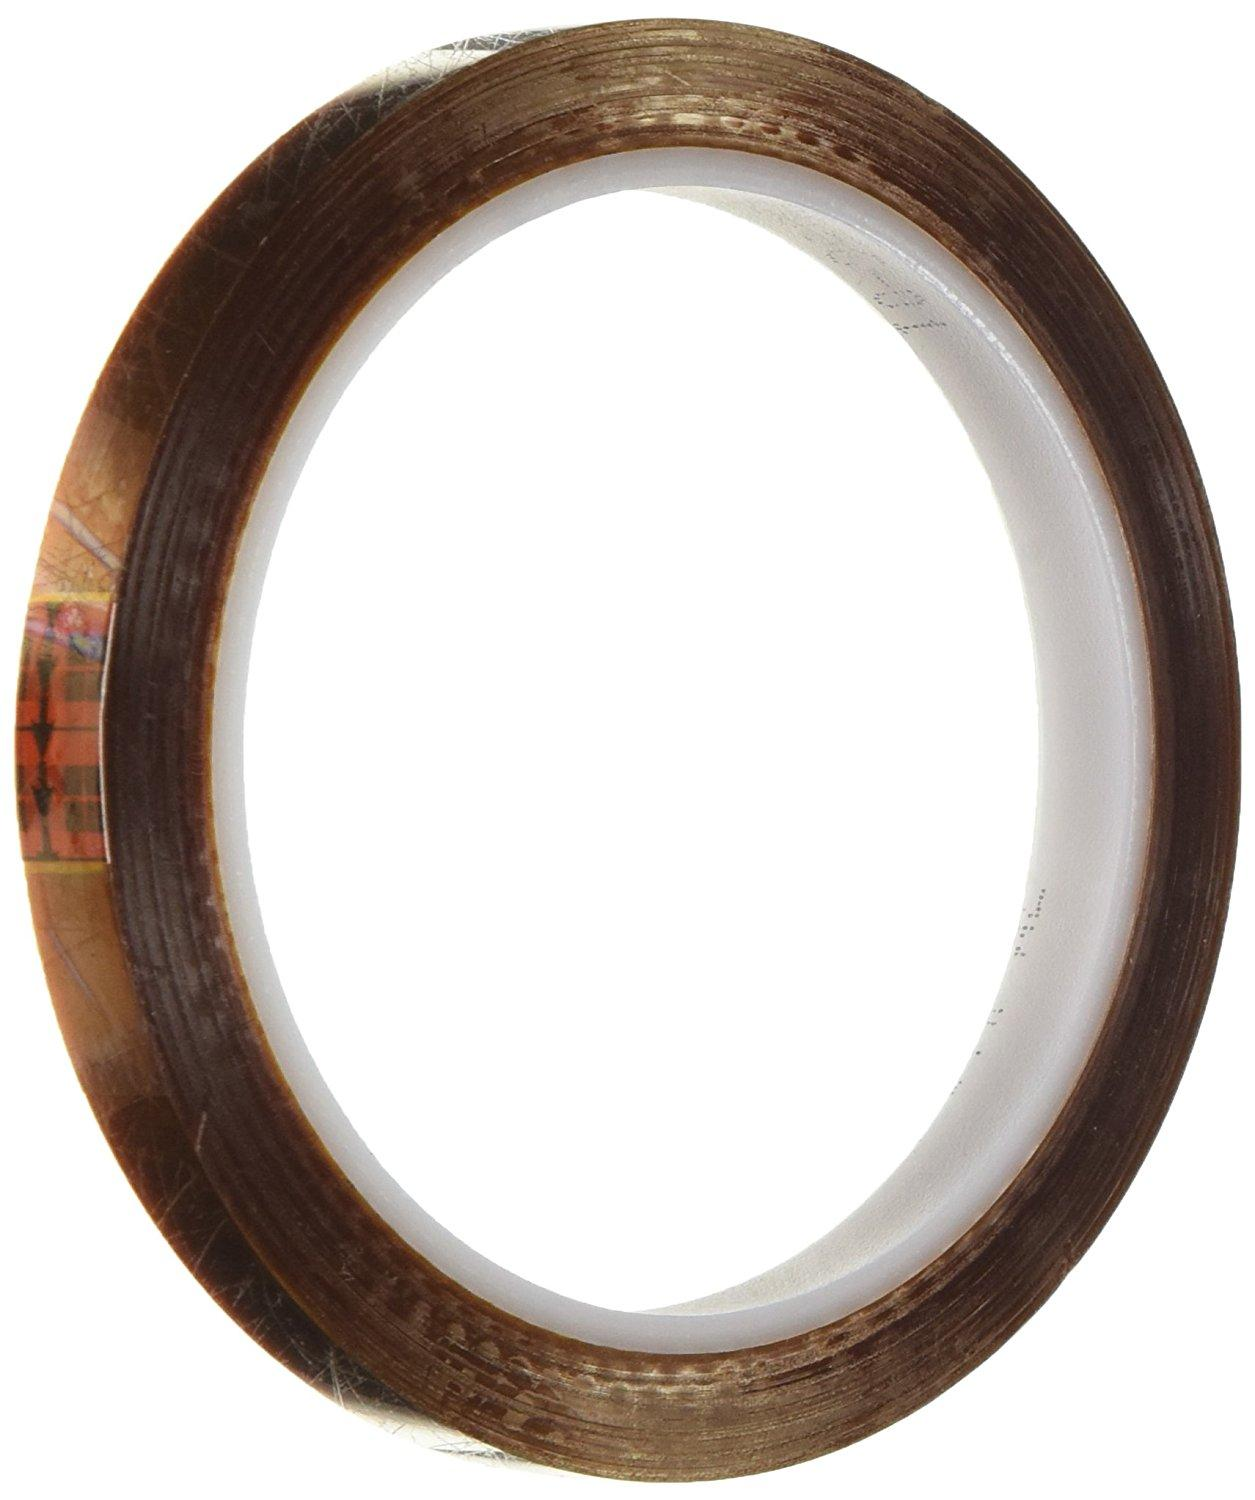 3M 1205 CIRCLE-0.375-2000 Pack of 2000 Maximum Temperature: 311 degrees F 3M 1205 CIRCLE-0.375-2000 Amber Polyimide//Kapton Film Tape with Acrylic Adhesive